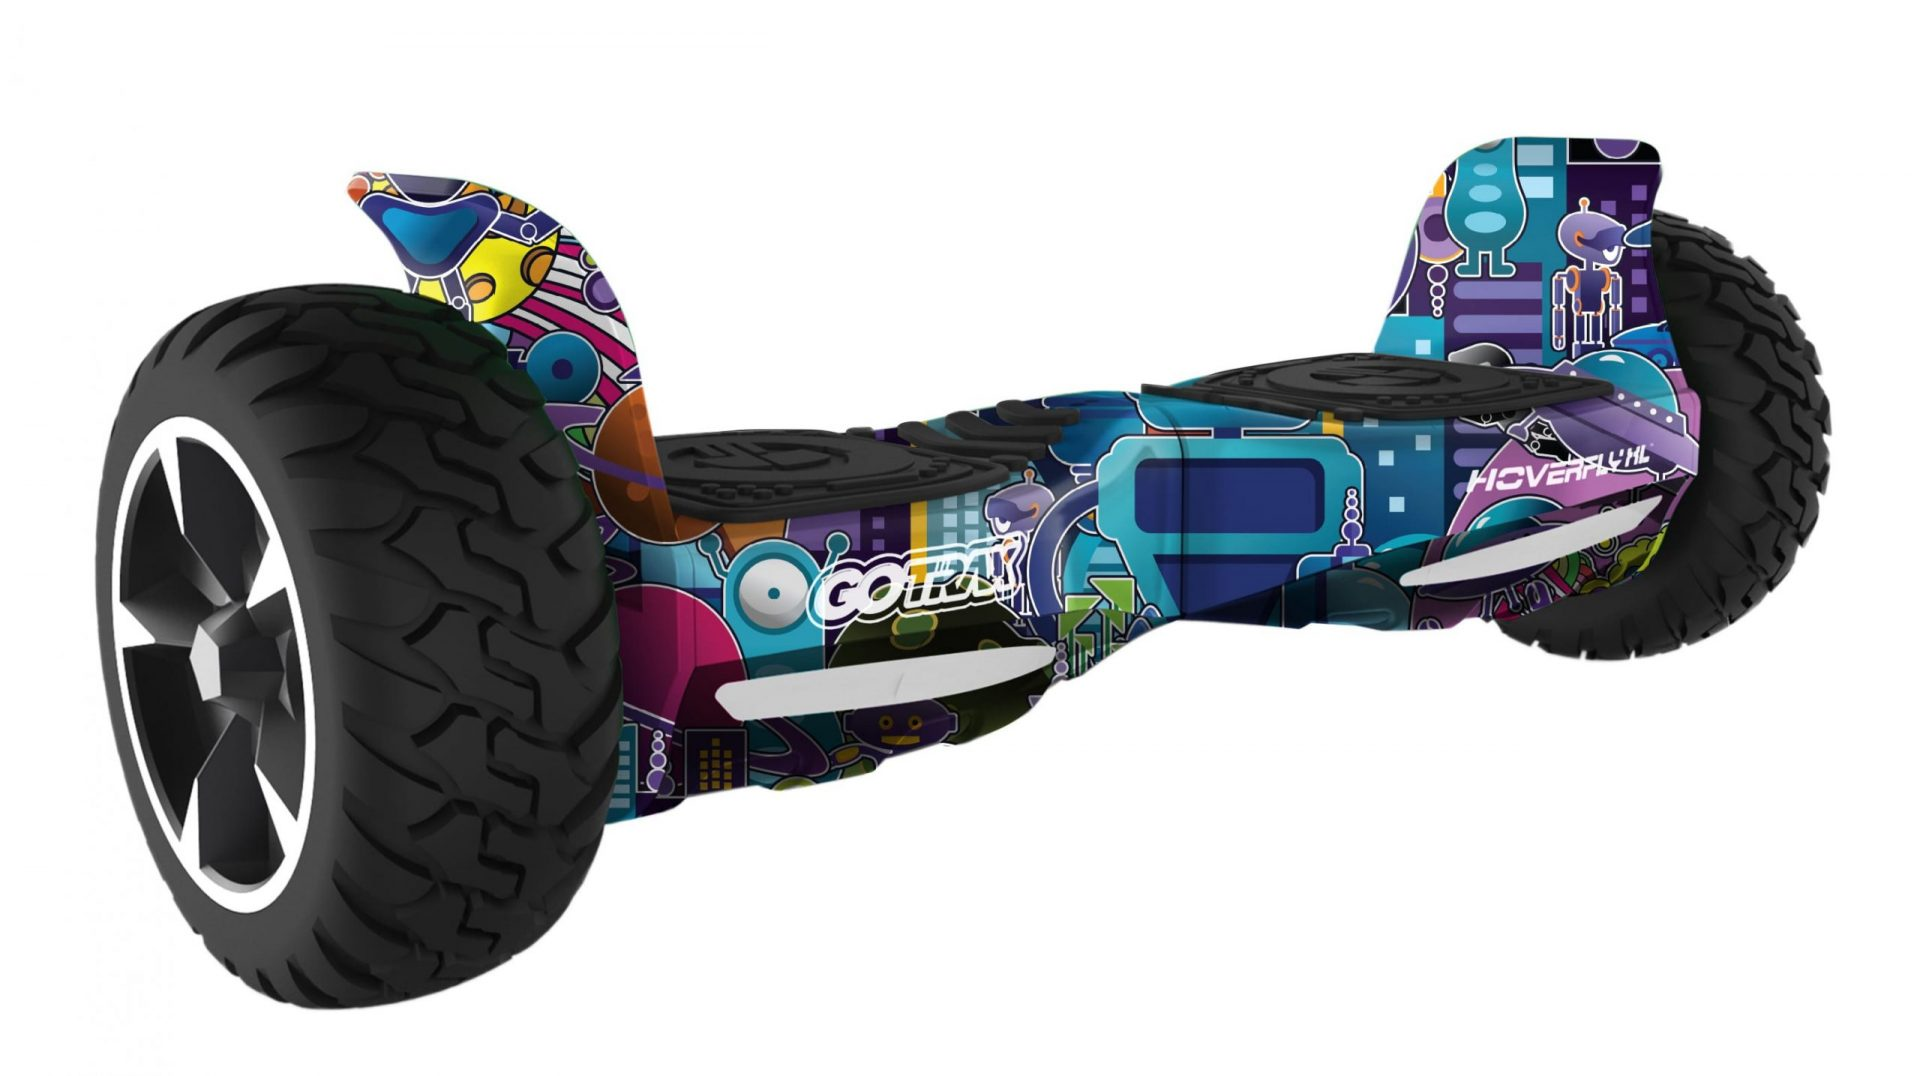 Gotrax Hoverfly XL Hoverboard Review 2020